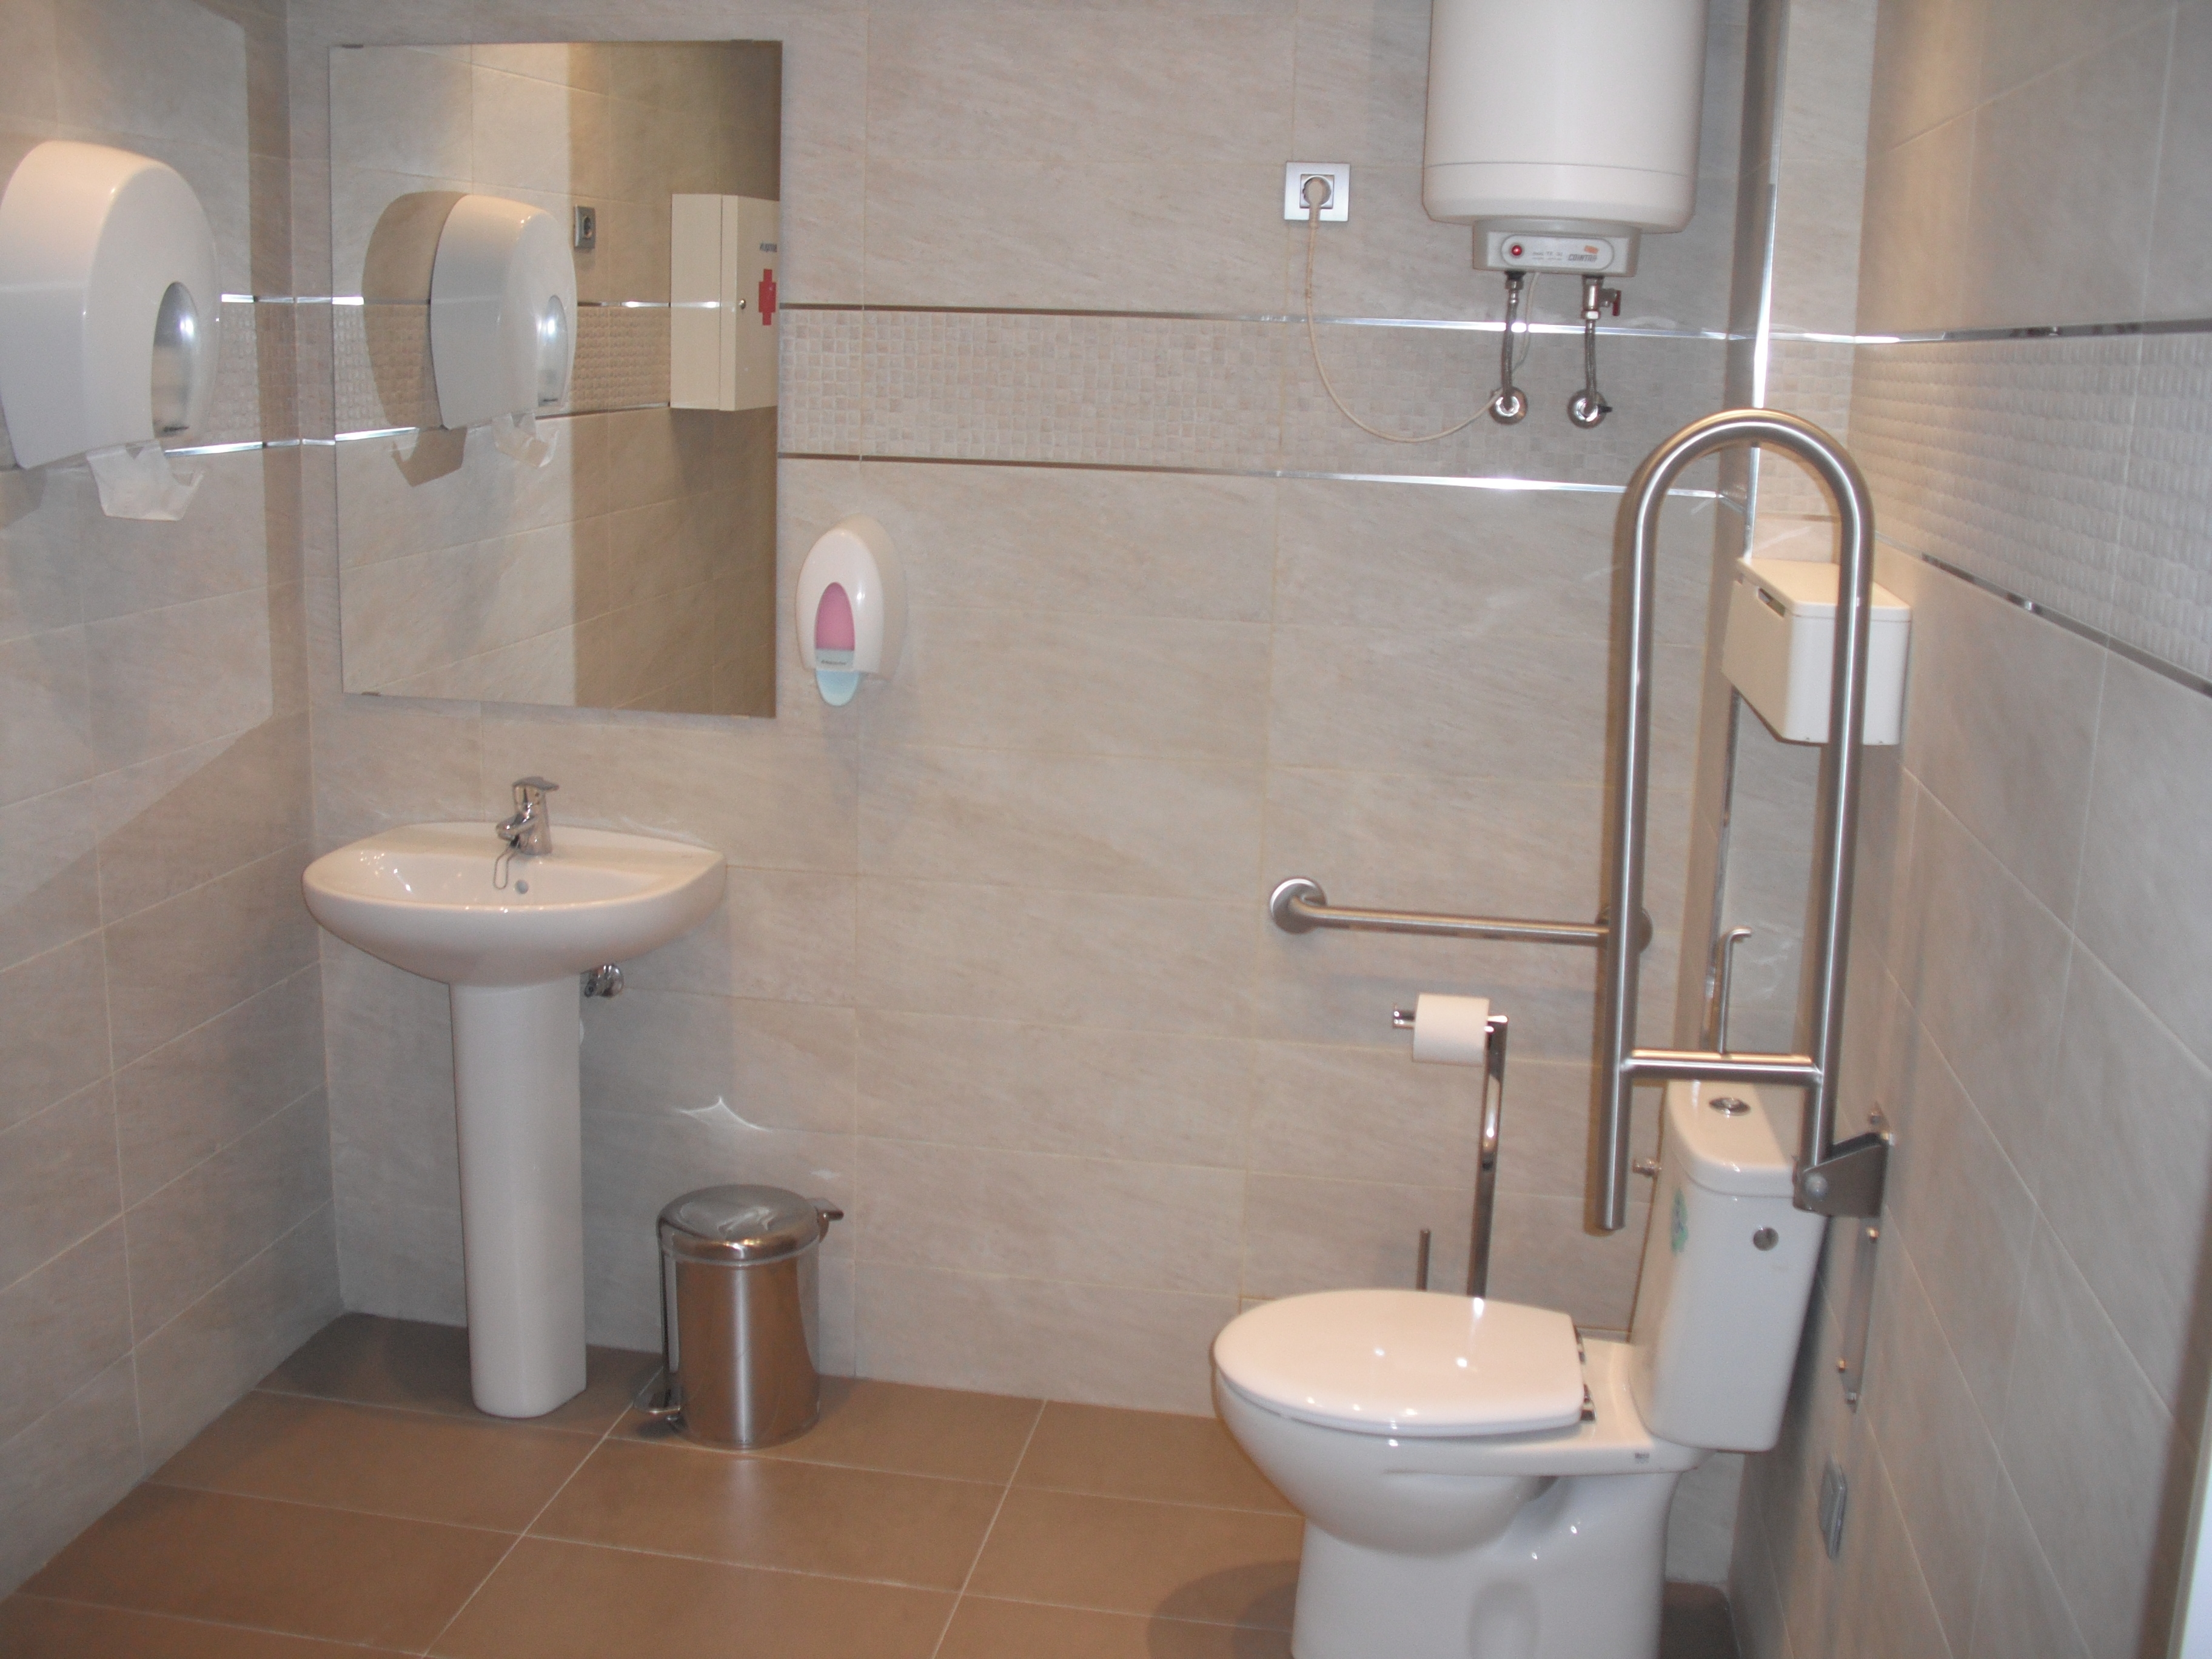 Diseno De Un Baño Para Discapacitados:Fotos De Banos Para Discapacitados Pictures to pin on Pinterest